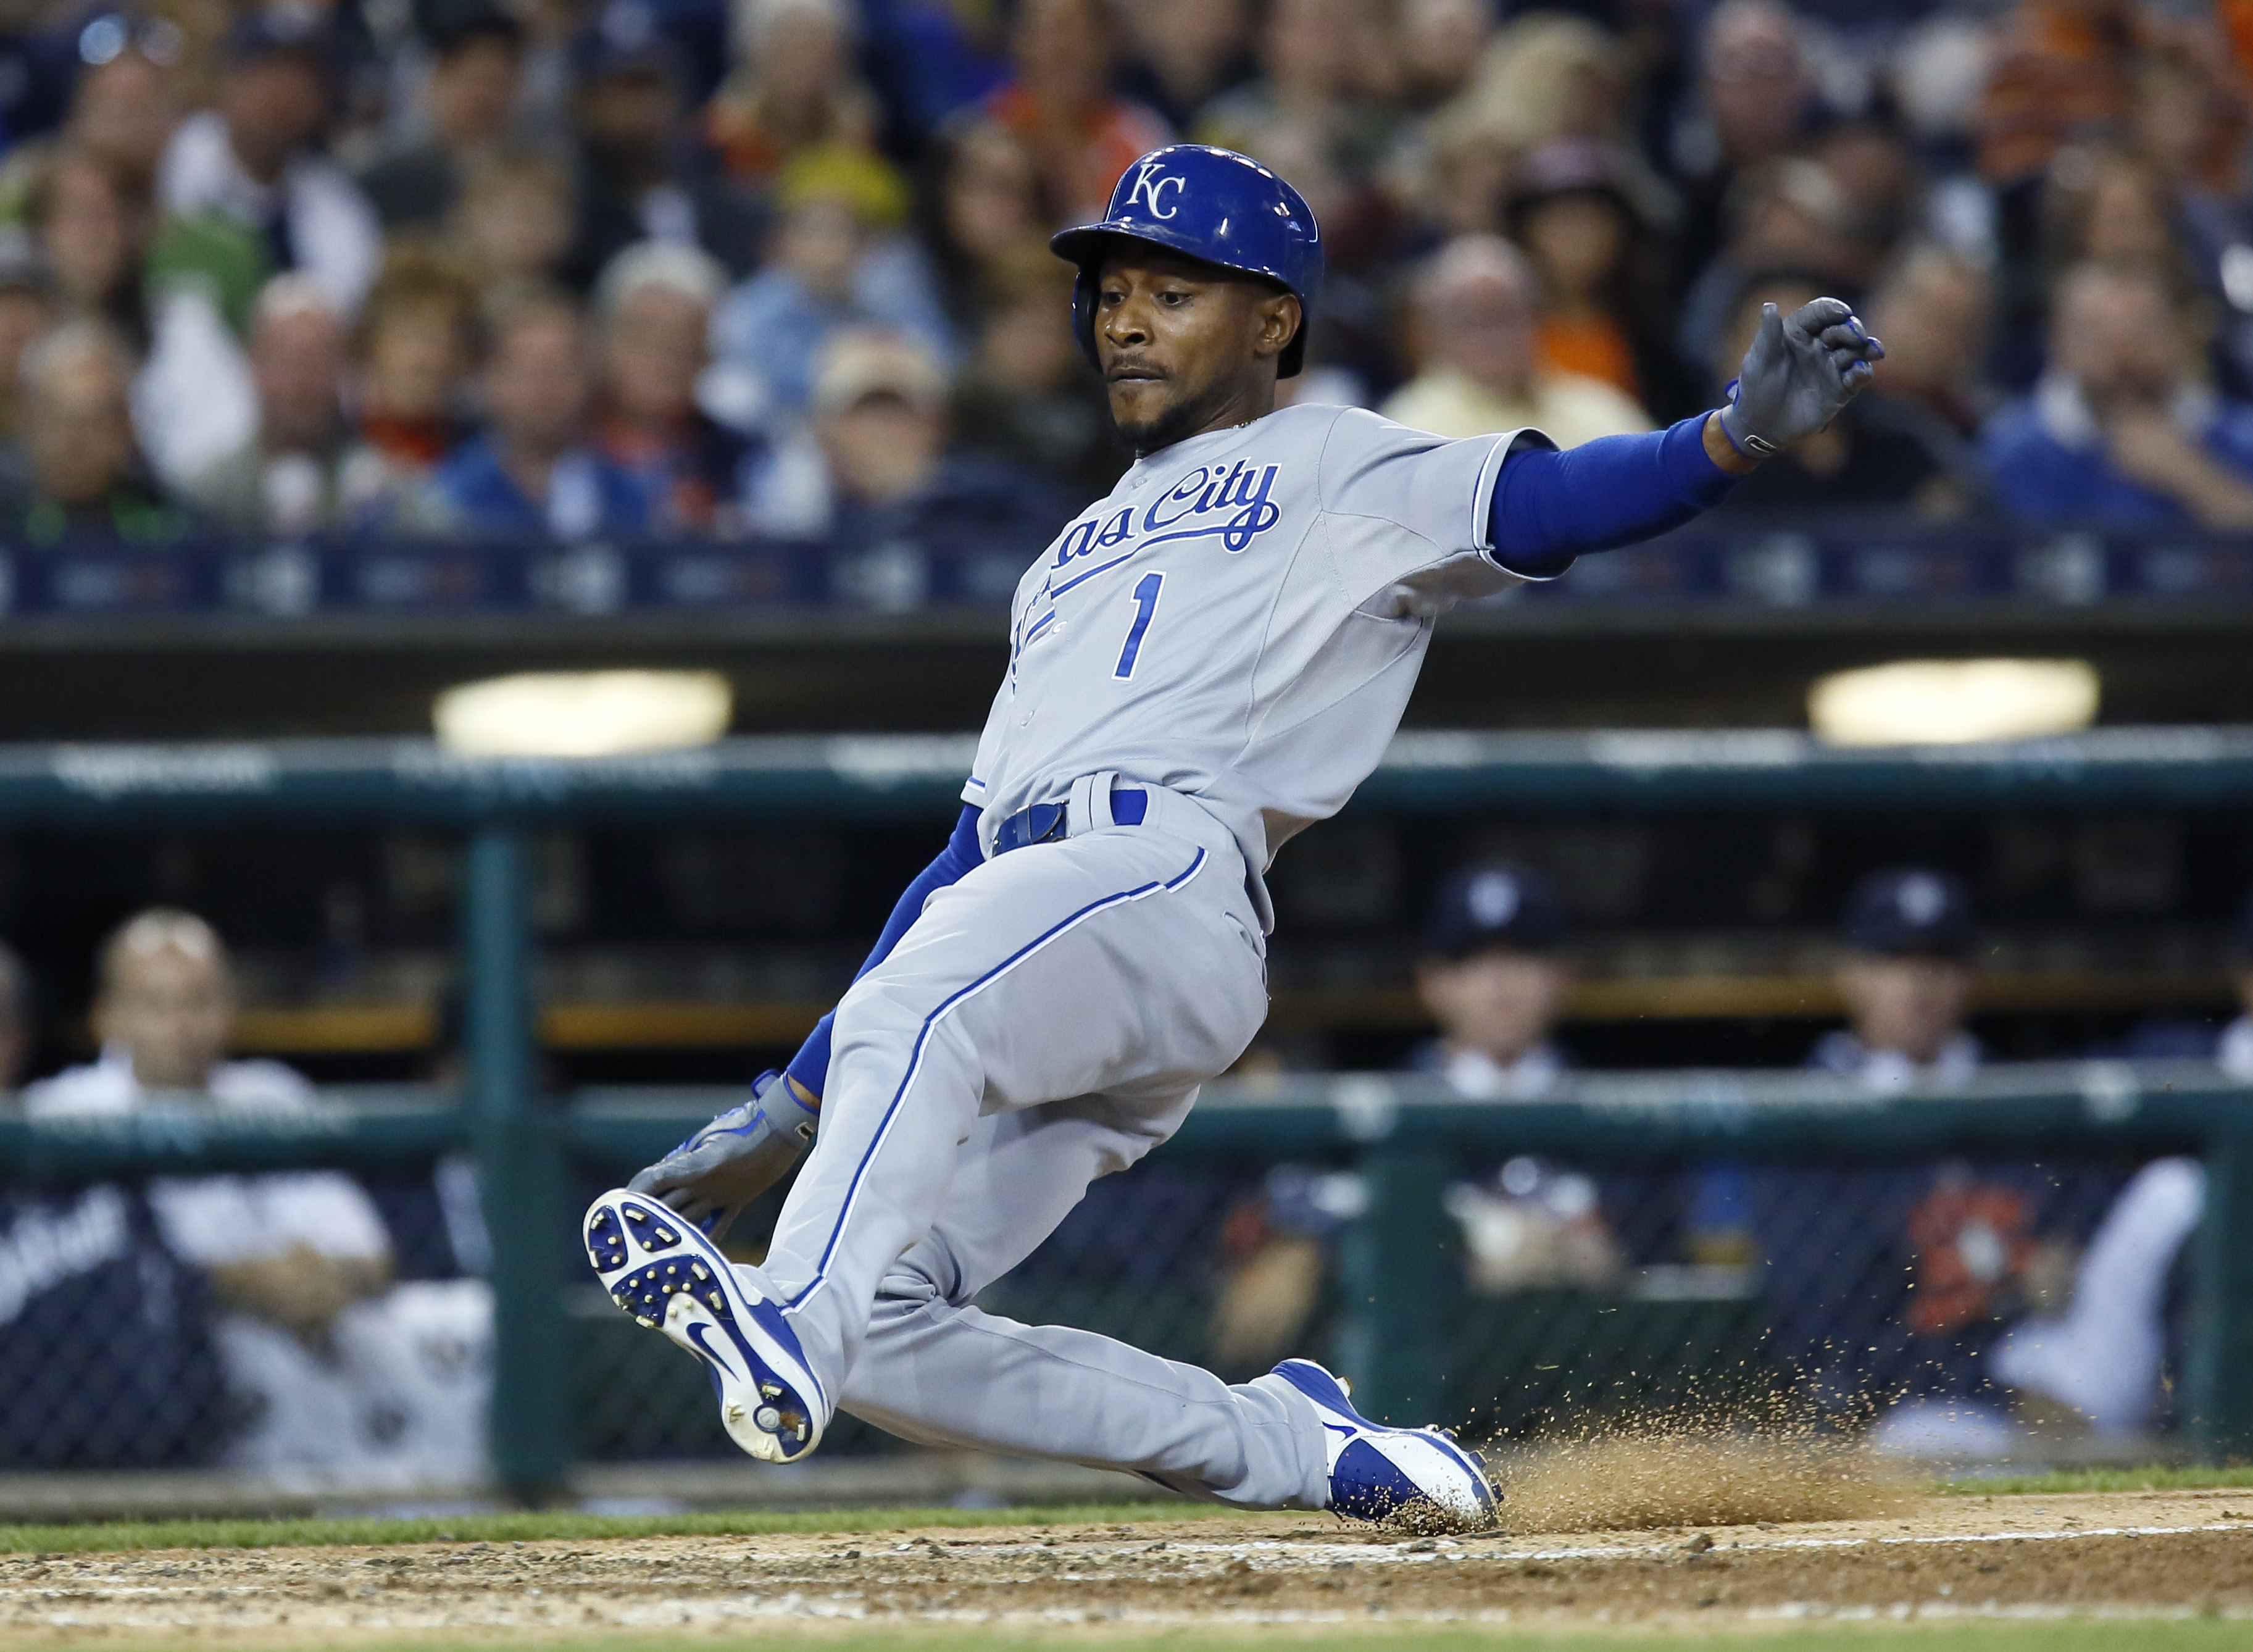 Kansas City Royals' Jarrod Dyson (1) scores against the Detroit Tigers on a single by Christian Colon during the seventh inning of a baseball game at Comerica Park, Saturday, Sept. 19, 2015, in Detroit. (AP Photo/Duane Burleson)